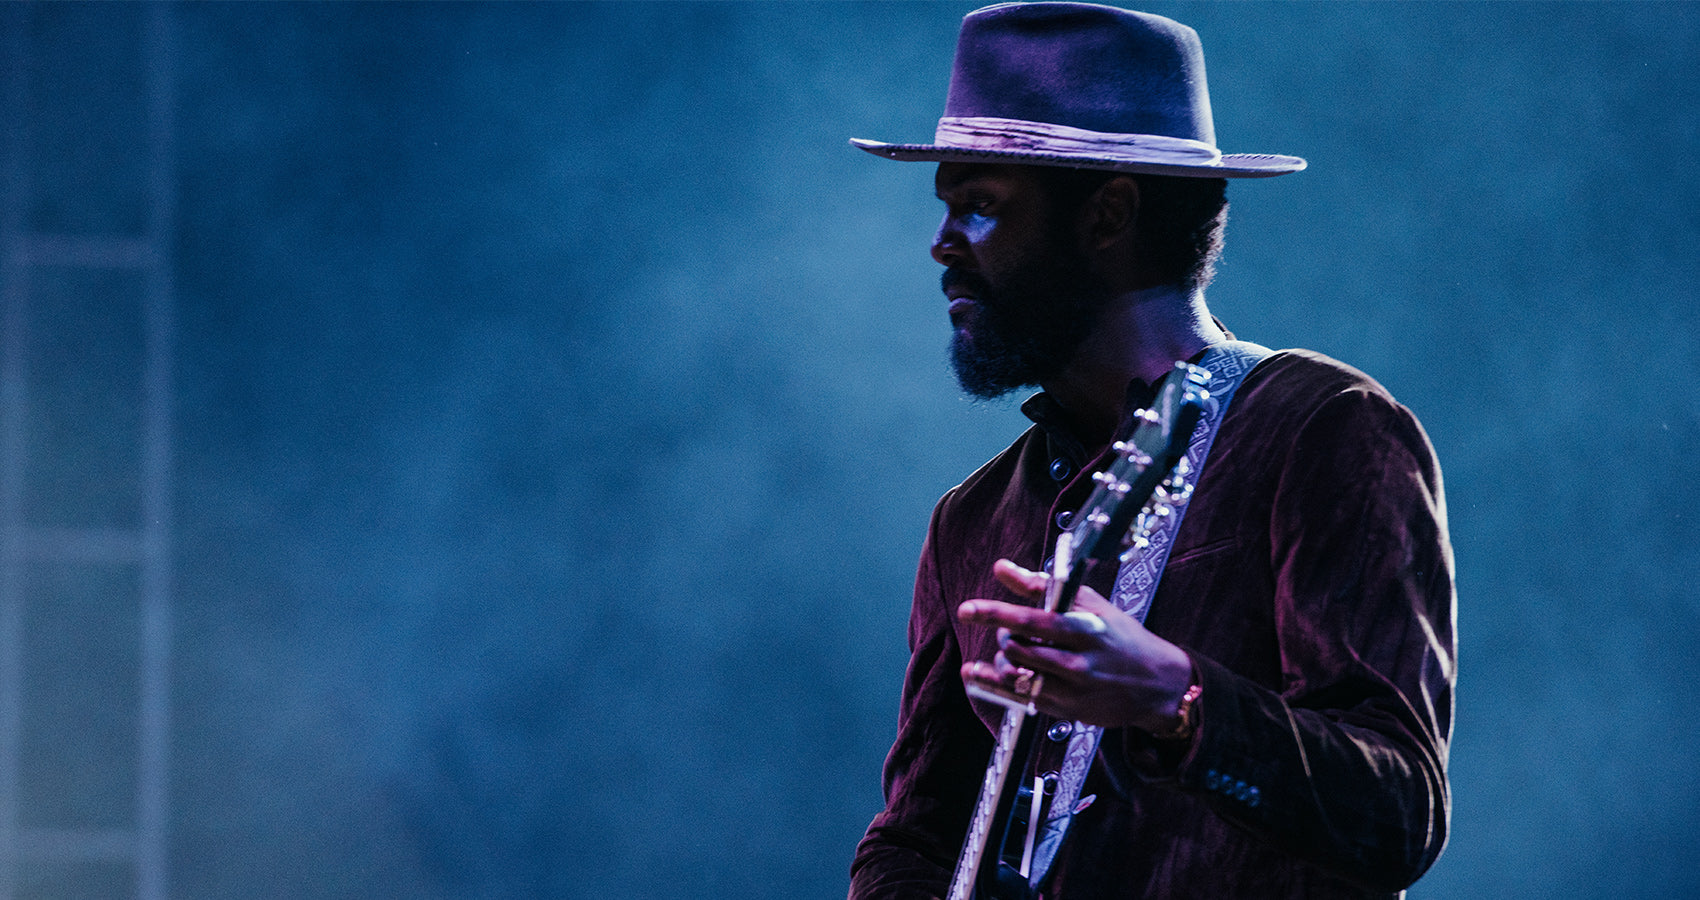 gary clark jr concert performance